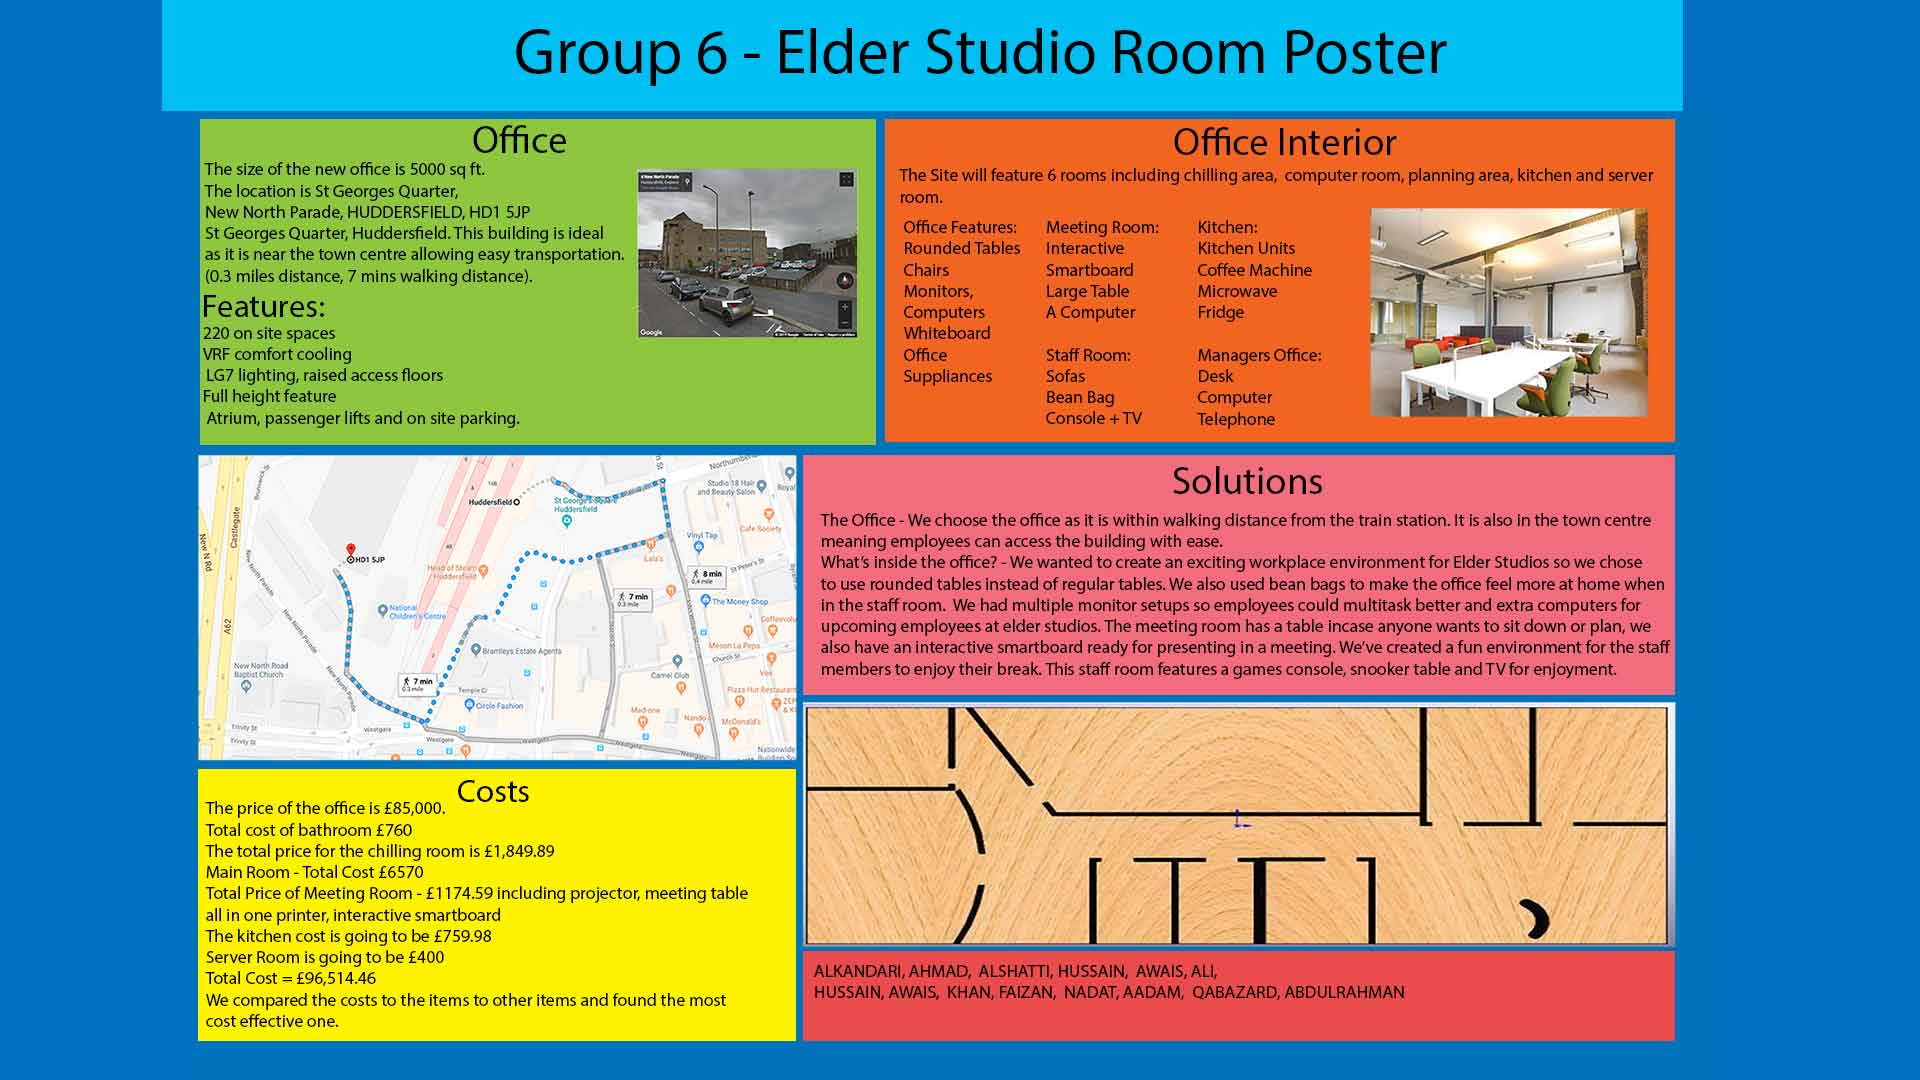 Group 6 Poster